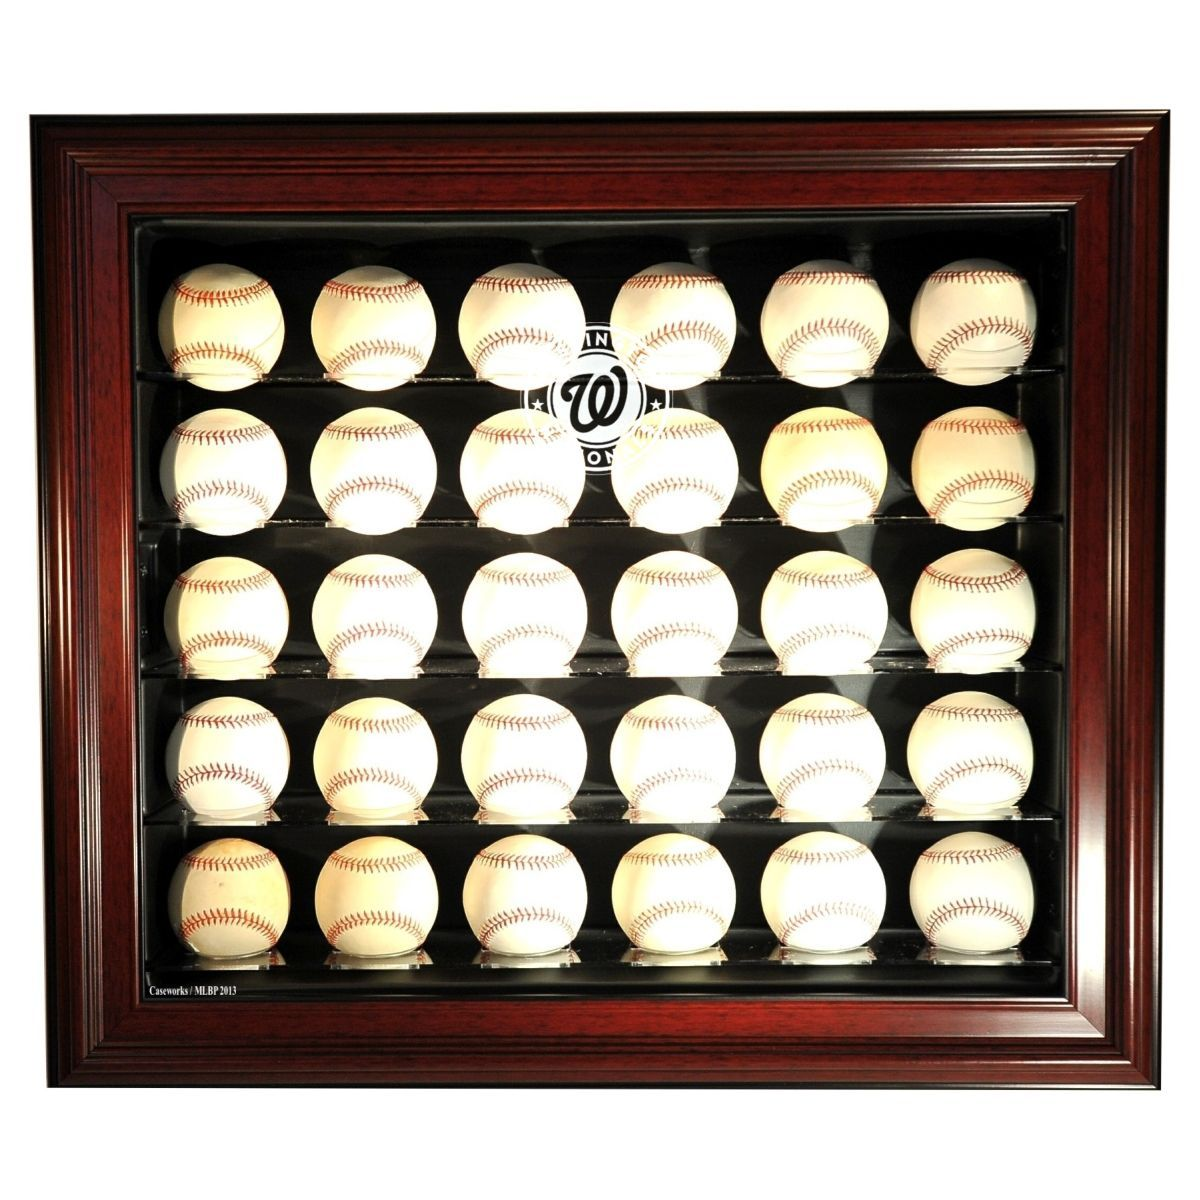 washington nationals 30 baseball cabinet style display on trends minimalist diy wooden furniture that impressing your living room furniture treatment id=26023